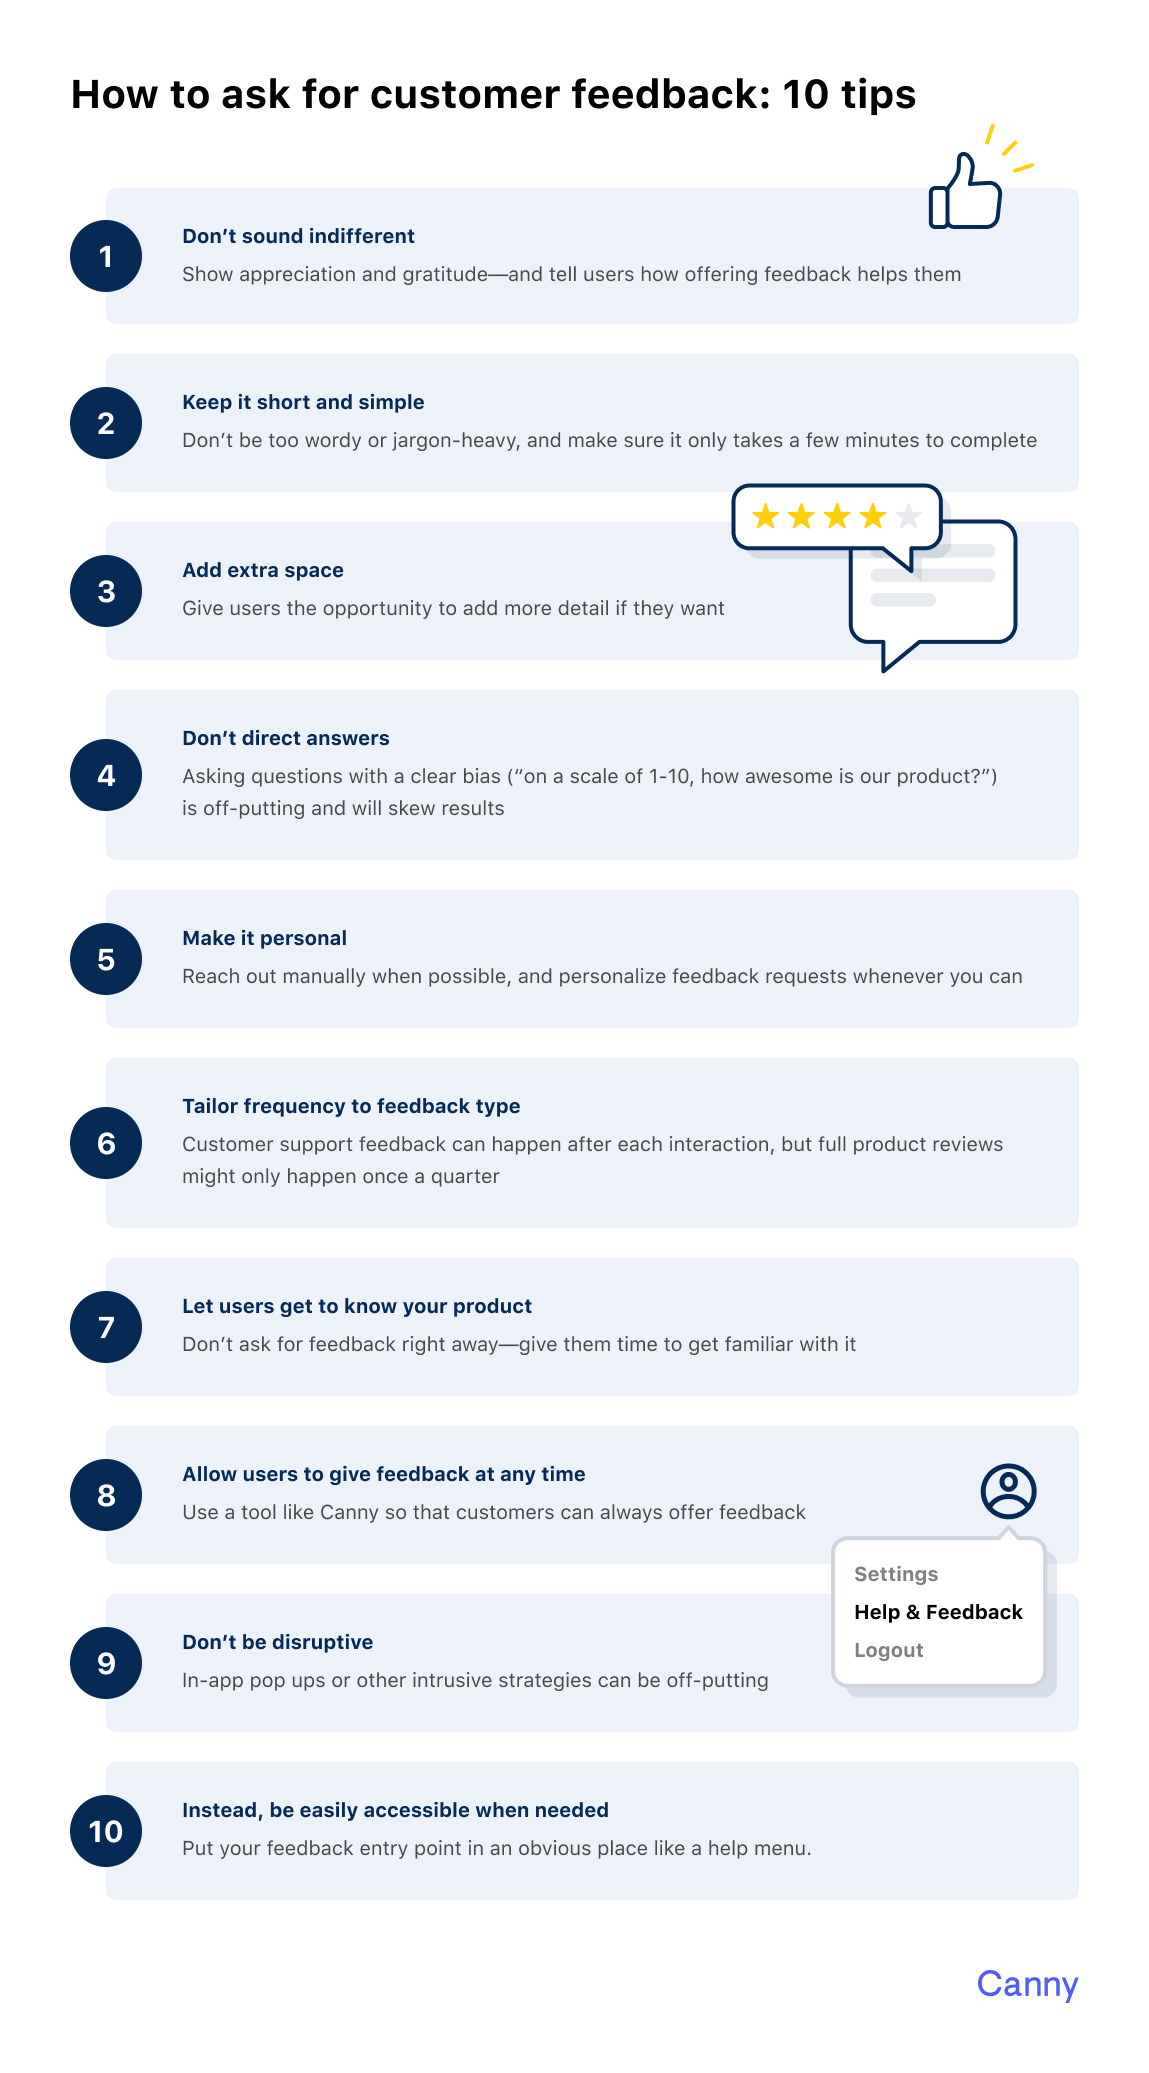 Infographic on how to ask for customer feedback